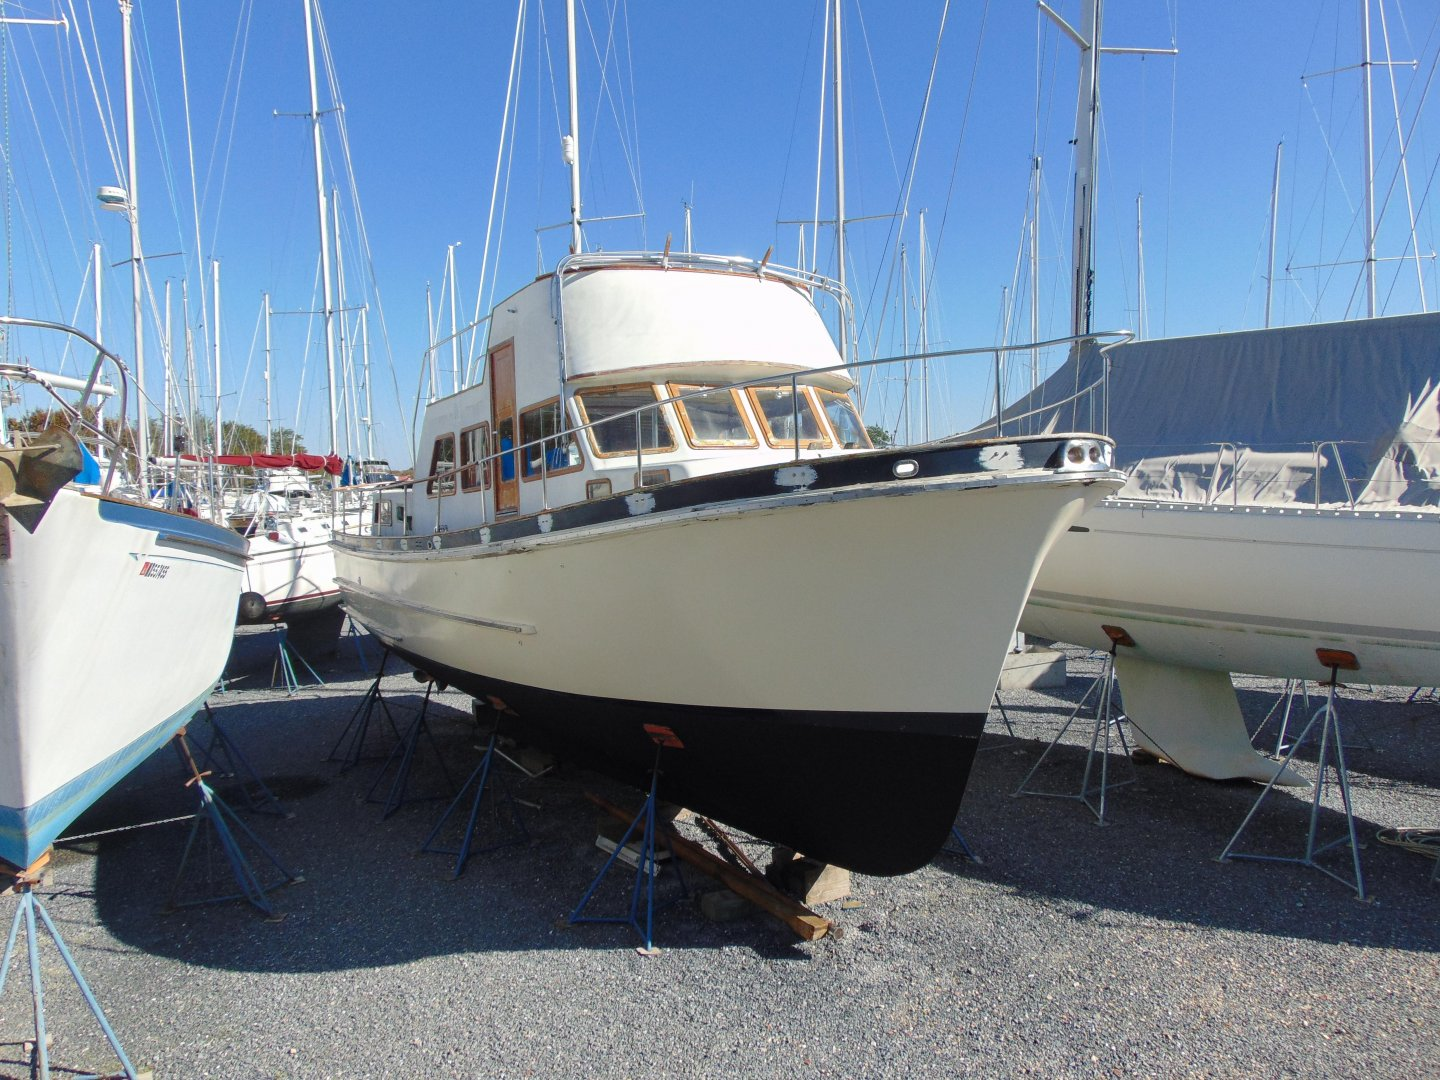 1973 Cheoy Lee 40 2019 for sale Wilson Yachts Gates Marine Service Deale MD USA asking USD 9900.jpg